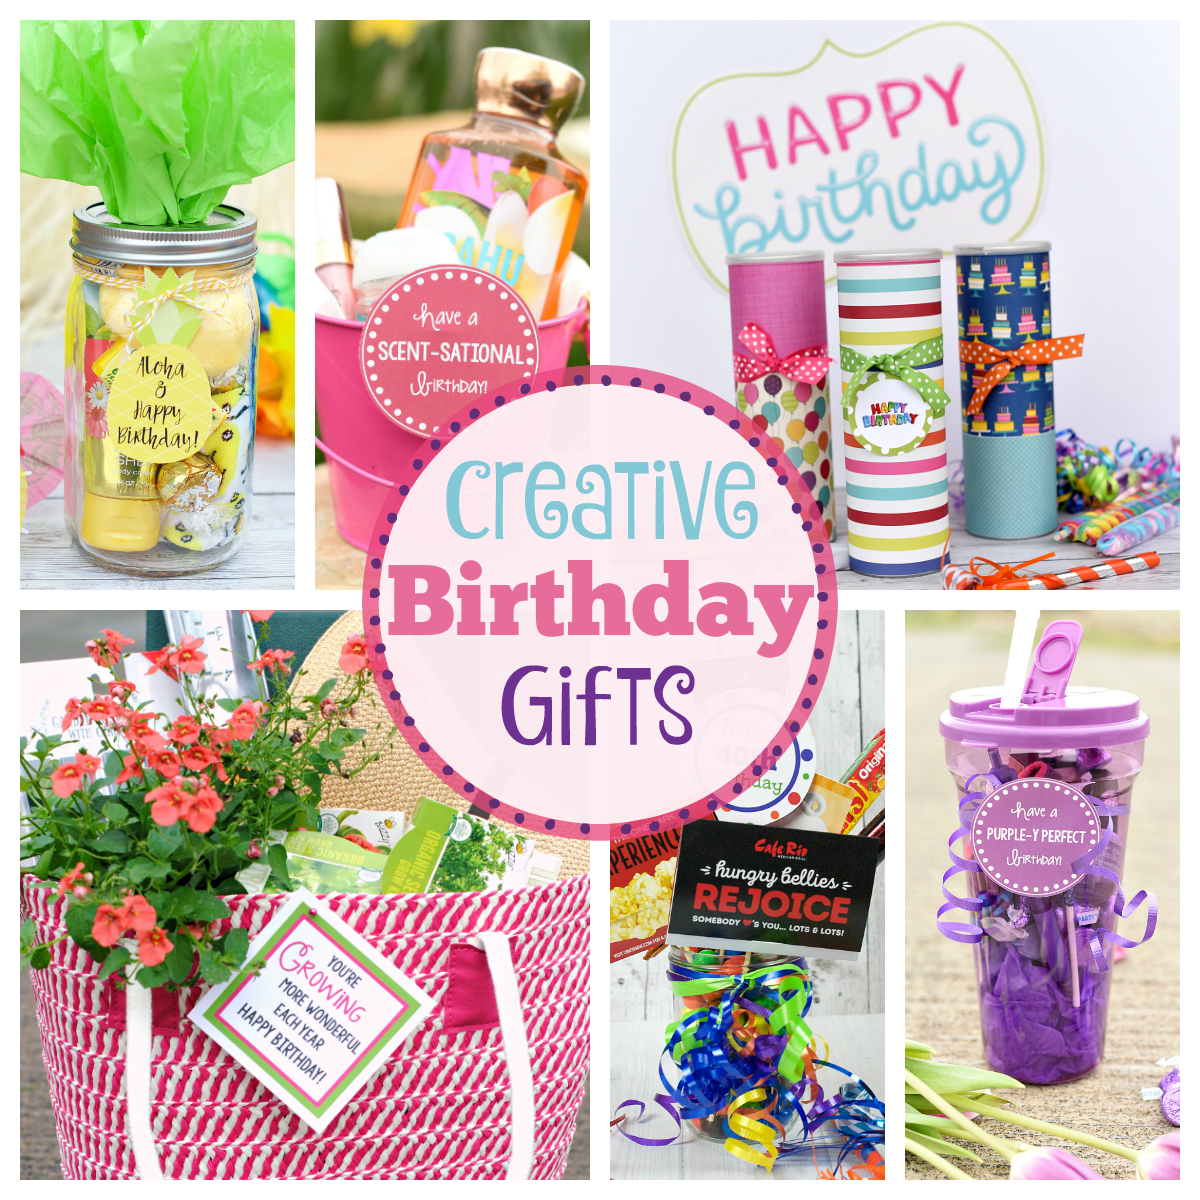 Inexpensive Birthday Gift Ideas: 25 Fun Birthday Gifts Ideas For Friends